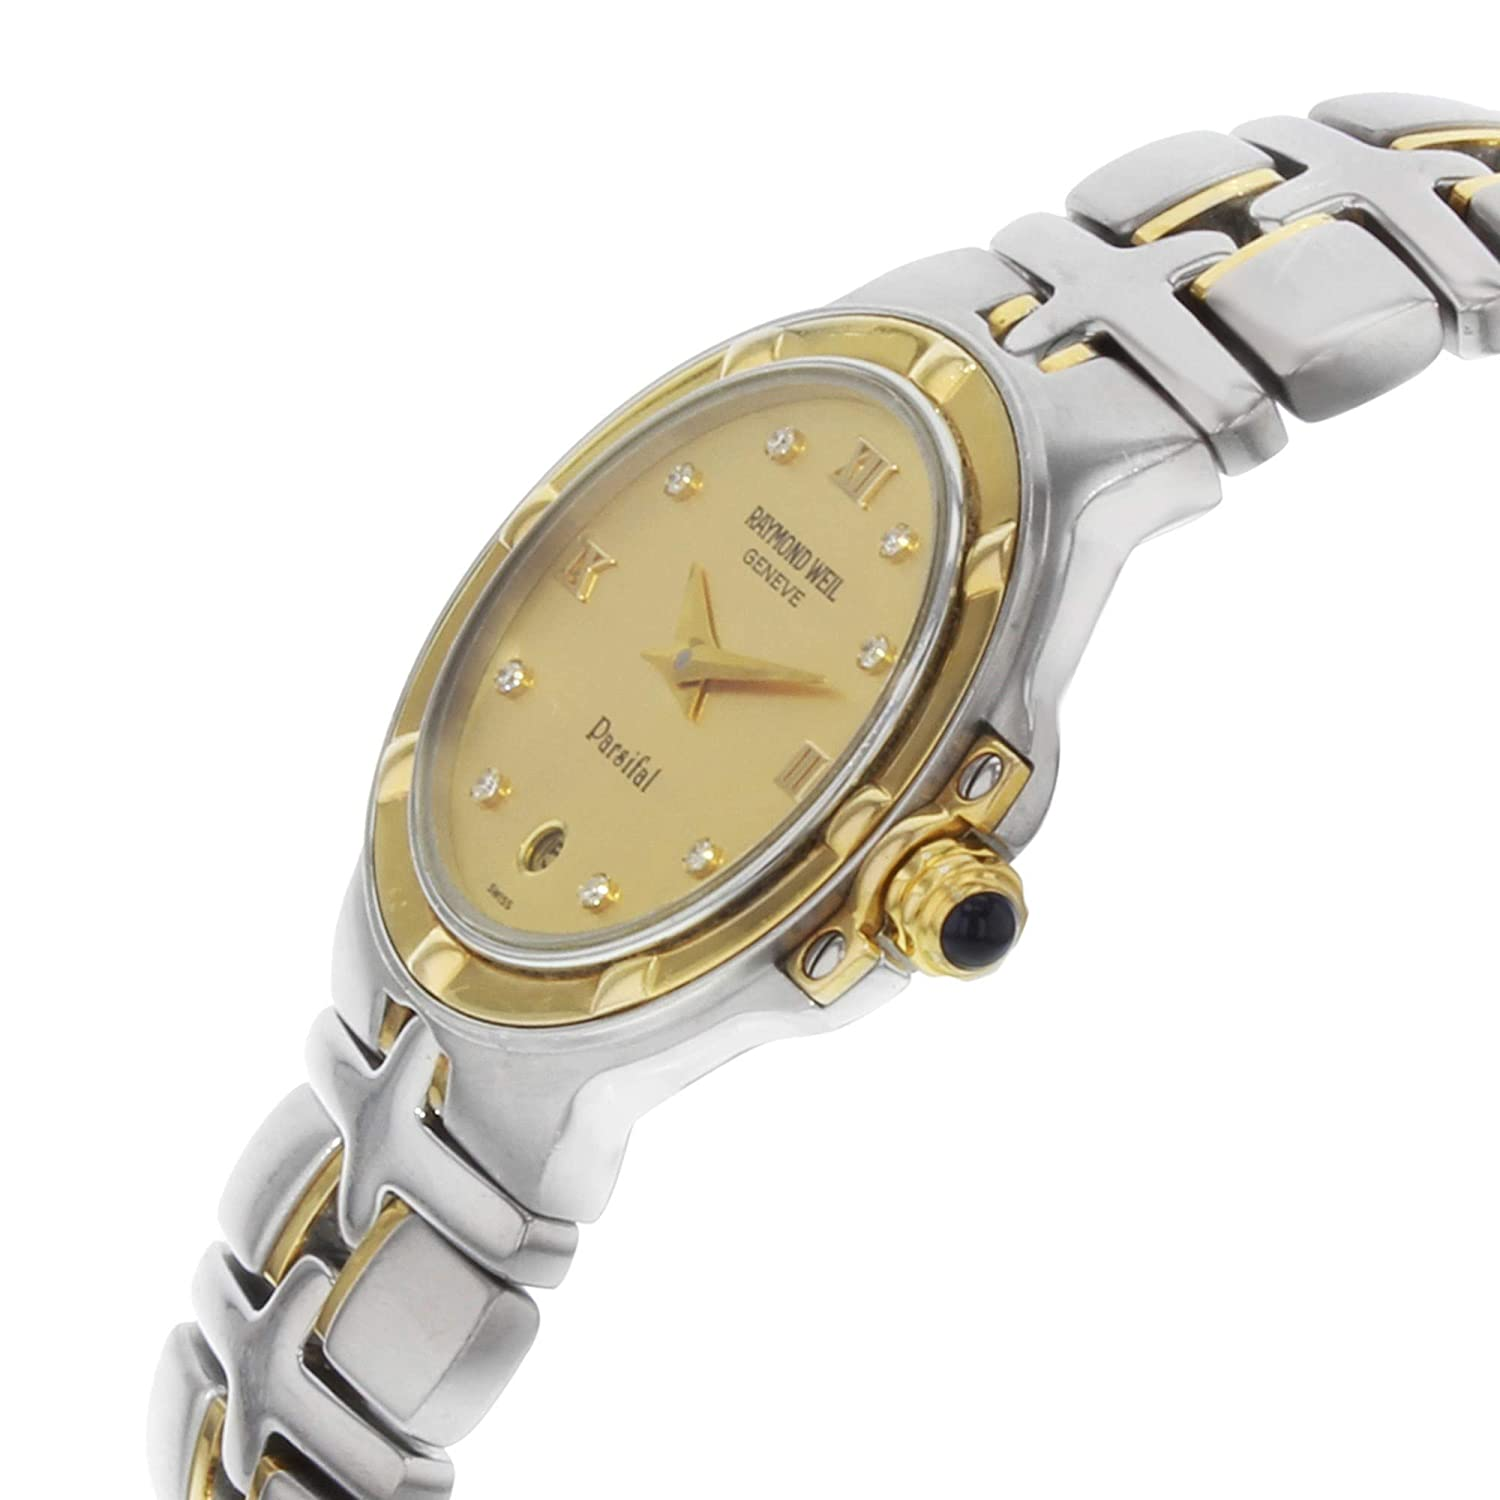 Amazon.com: Raymond Weil Parsifal Quartz Female Watch 9990-CH (Certified Pre-Owned): Raymond Weil: Watches